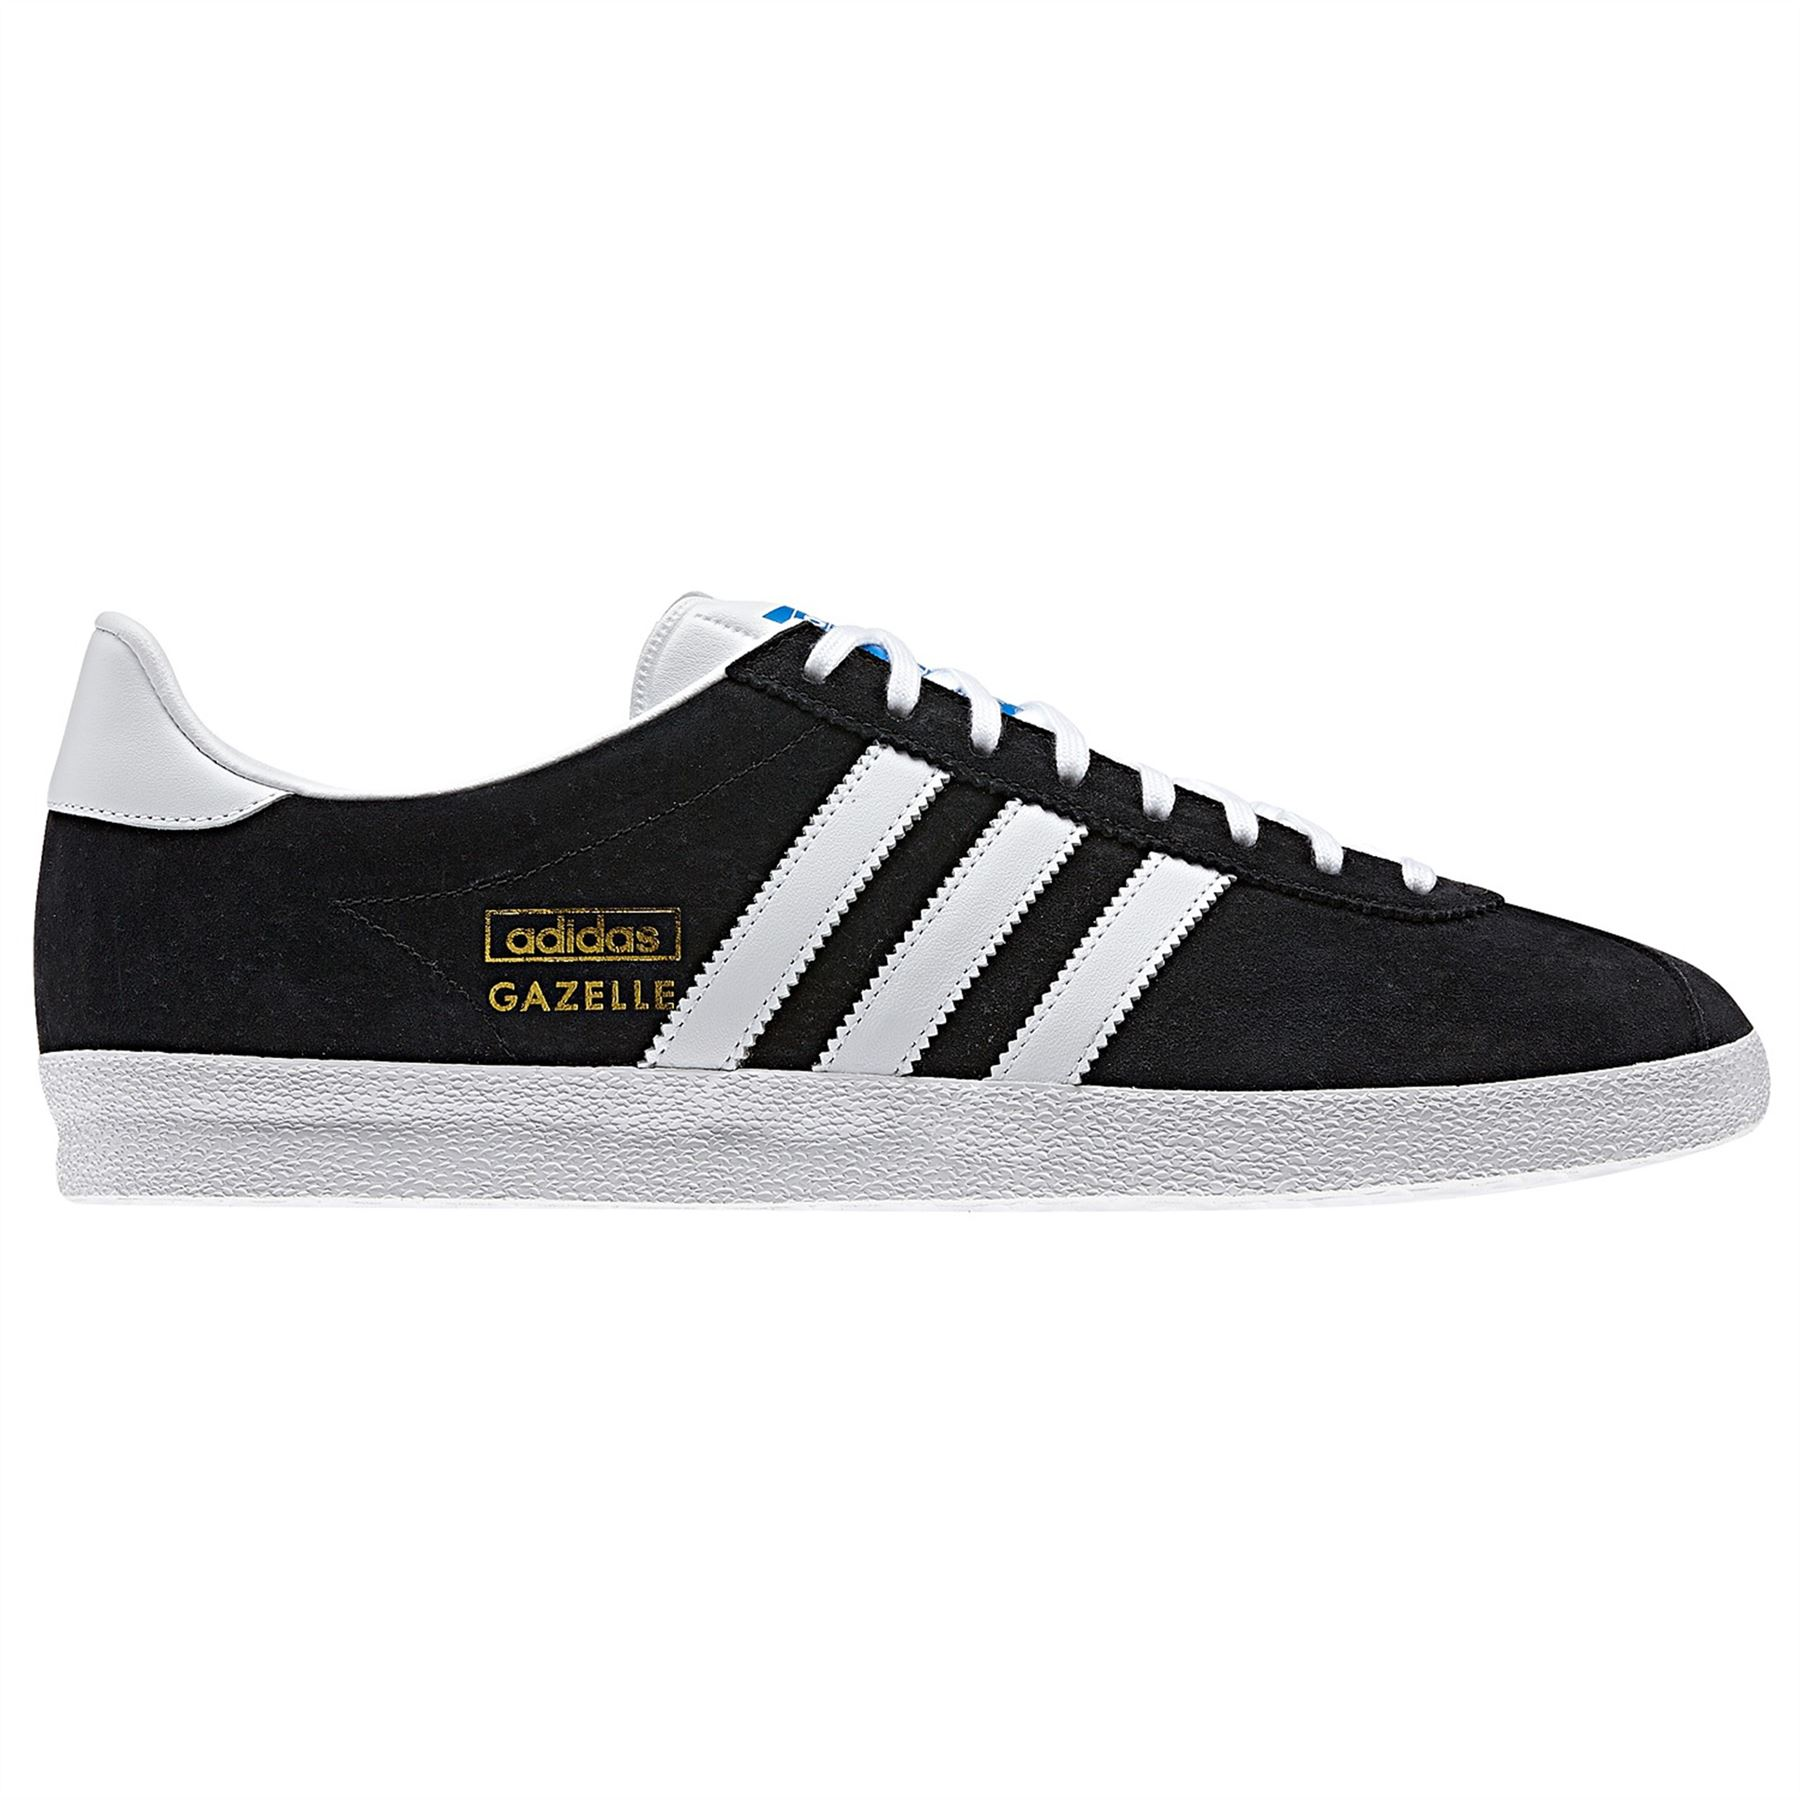 buy popular 4cd29 5e43c Details about adidas GAZELLE OG TRAINERS SNEAKERS ORIGINALS SUEDE RED BLUE  BLACK NAVY GOLD MEN